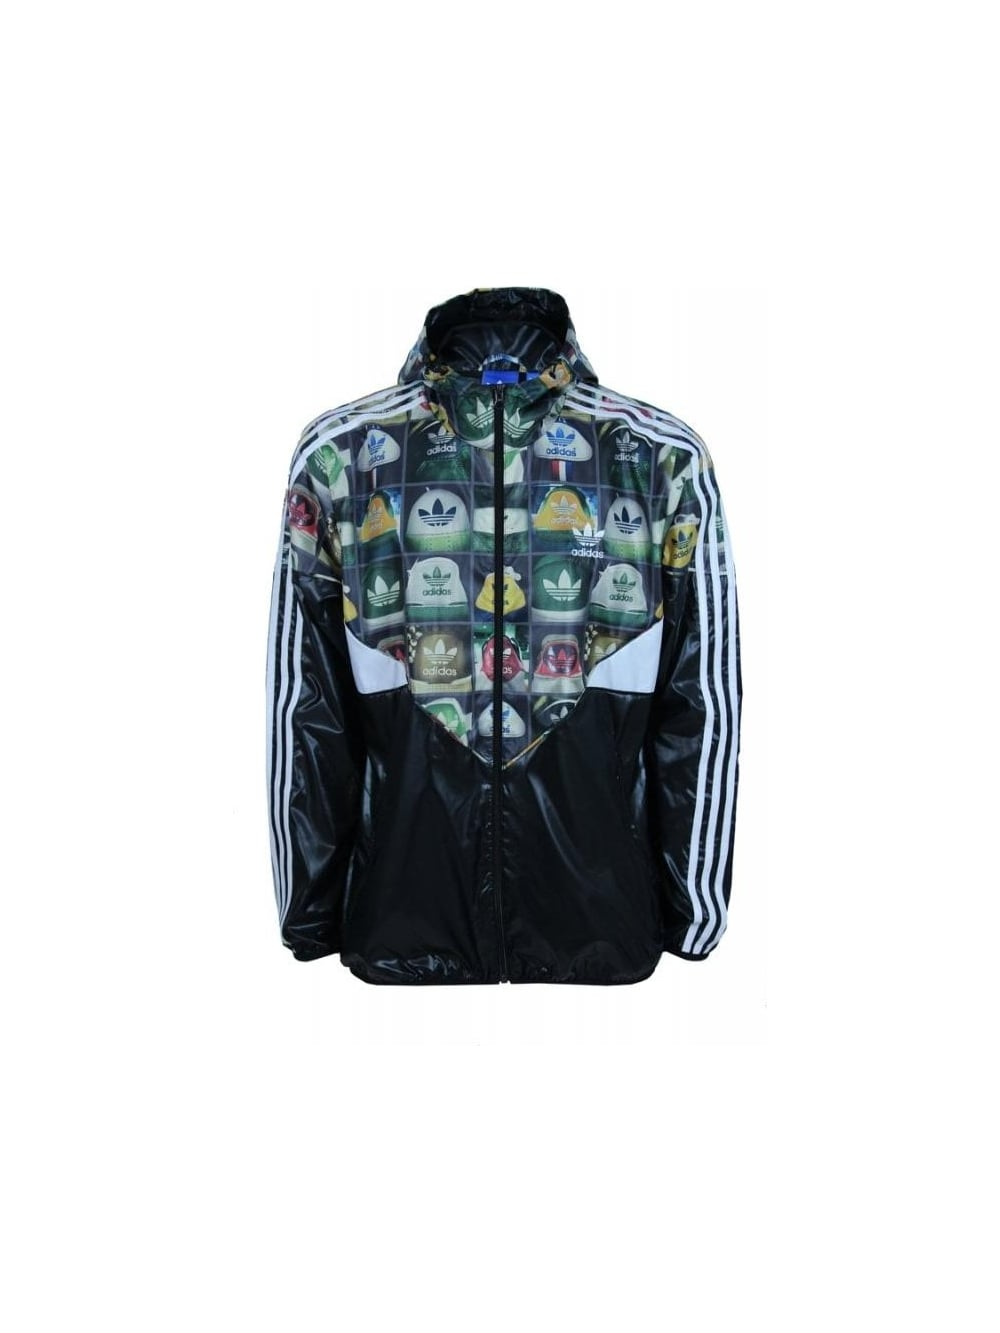 98b1c9d31 Adidas Colorado HT Jacket in Black - Northern Threads